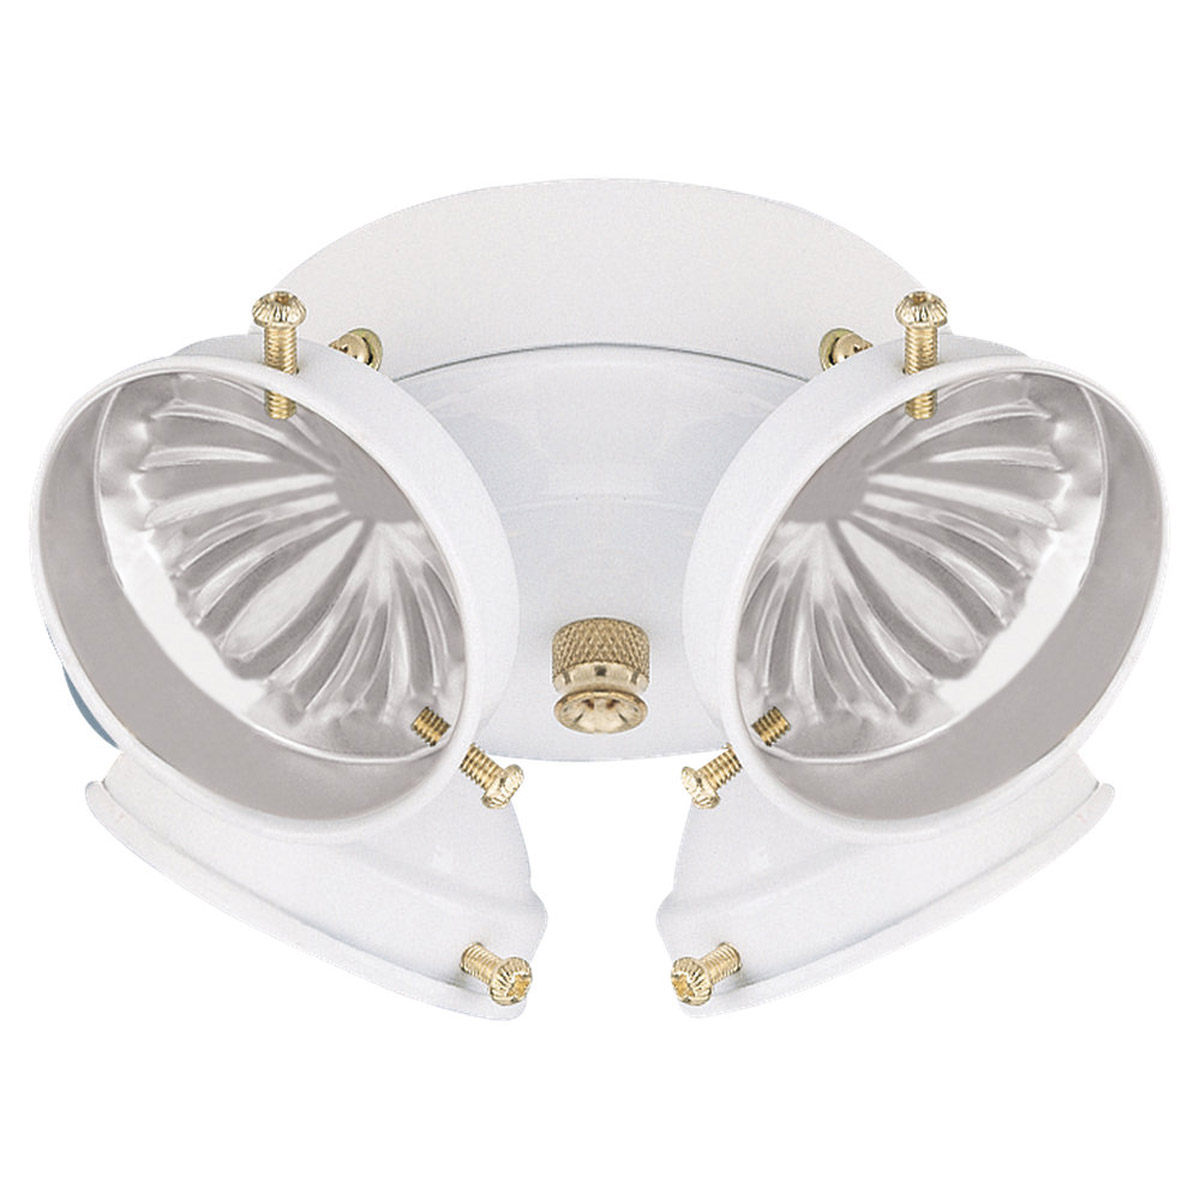 Sea Gull Lighting Signature 4 Light Fan Light Kit in White 16151B-15 photo